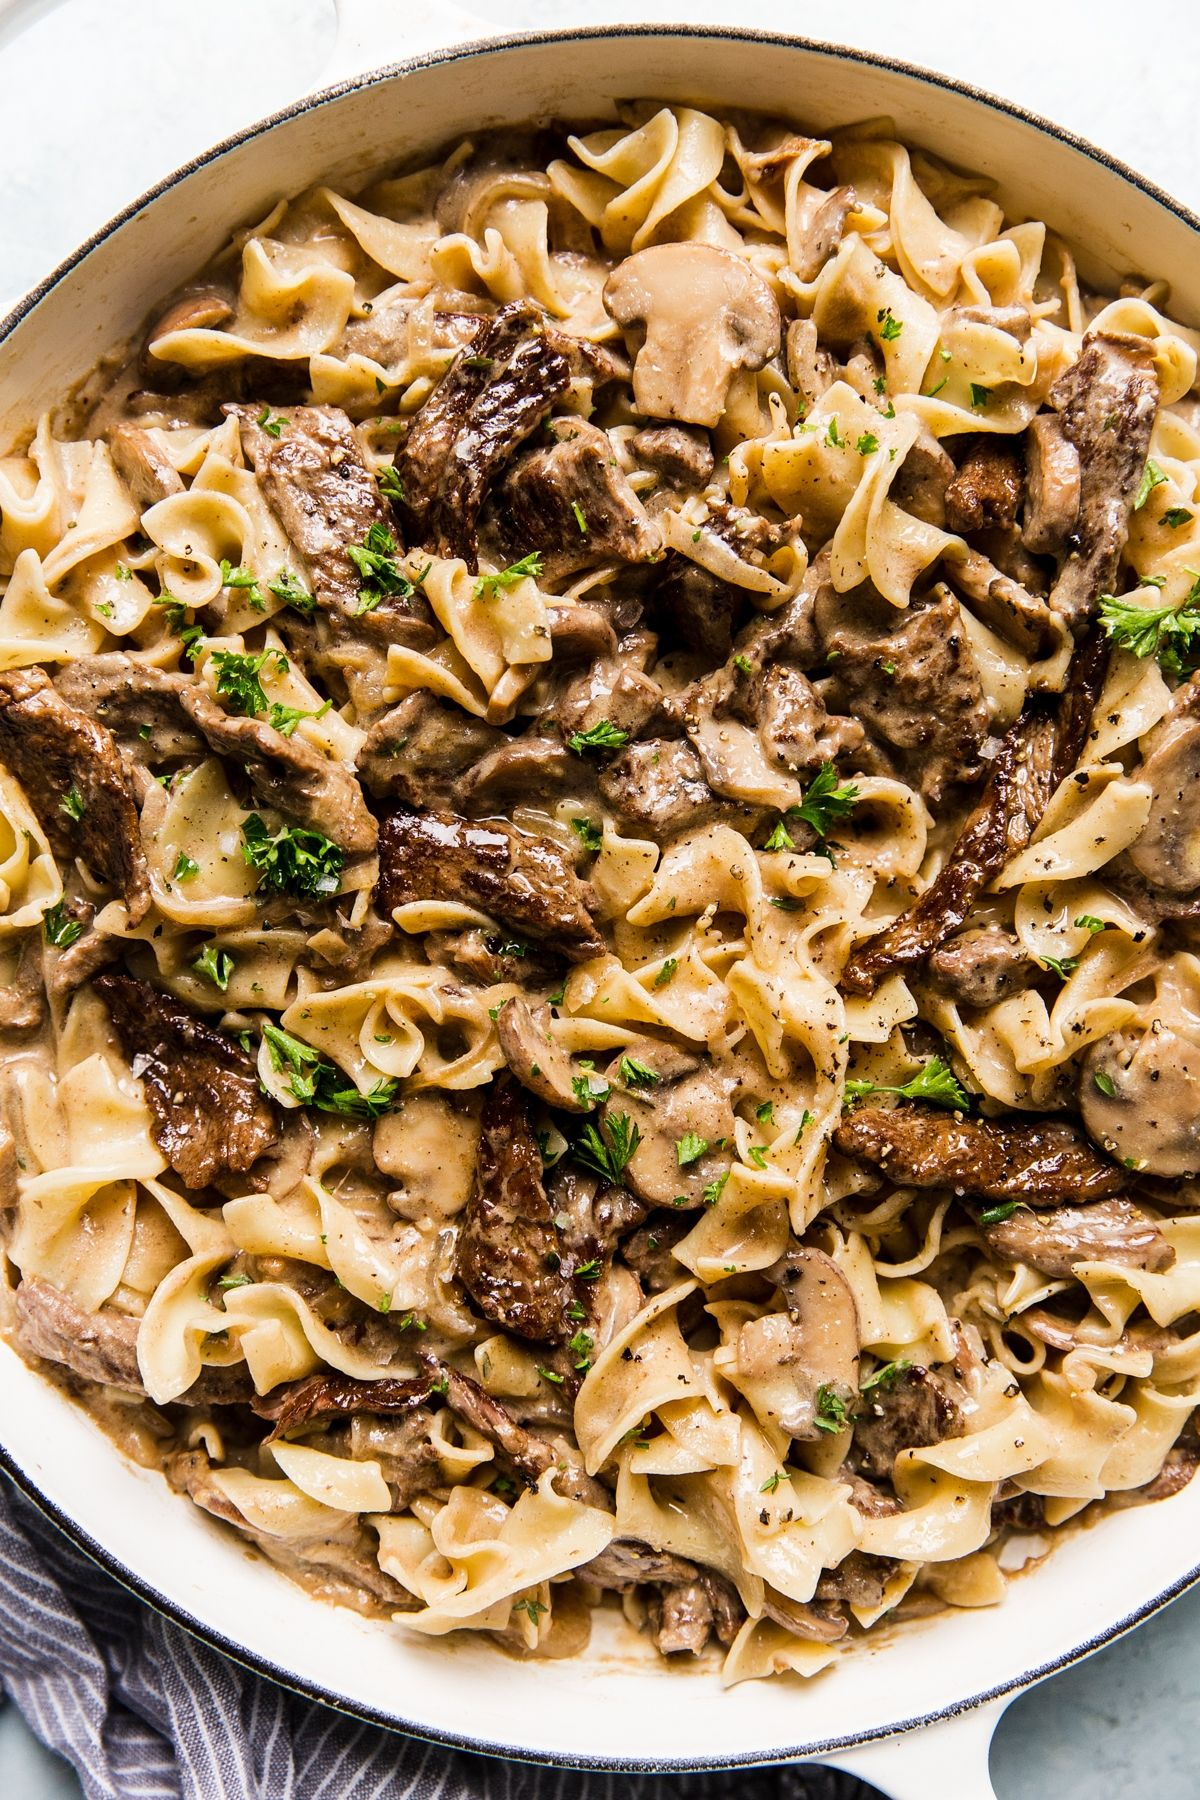 Beef Stroganoff by The Modern Proper || Beef stroganoff is a take-no-prisoners, soul-soothing, household-uniting kind of supper. Just thinking about cooking it feeds the hungriest parts of ourselves. Oh—and it's quick and easy, too.